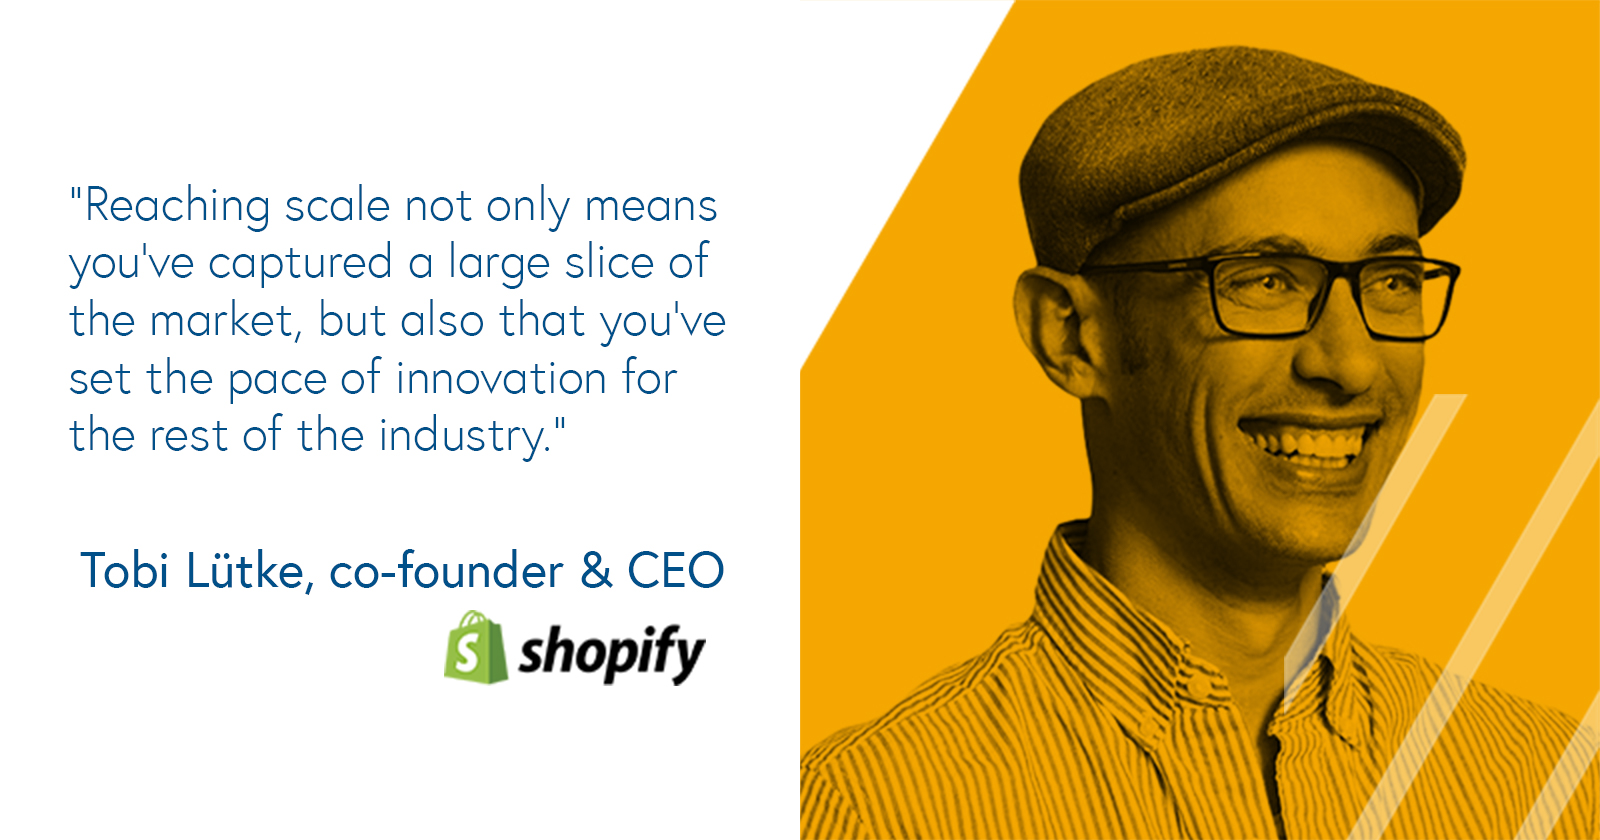 Tobi Lutke, co-founder and CEO of Shopify on scaling a company